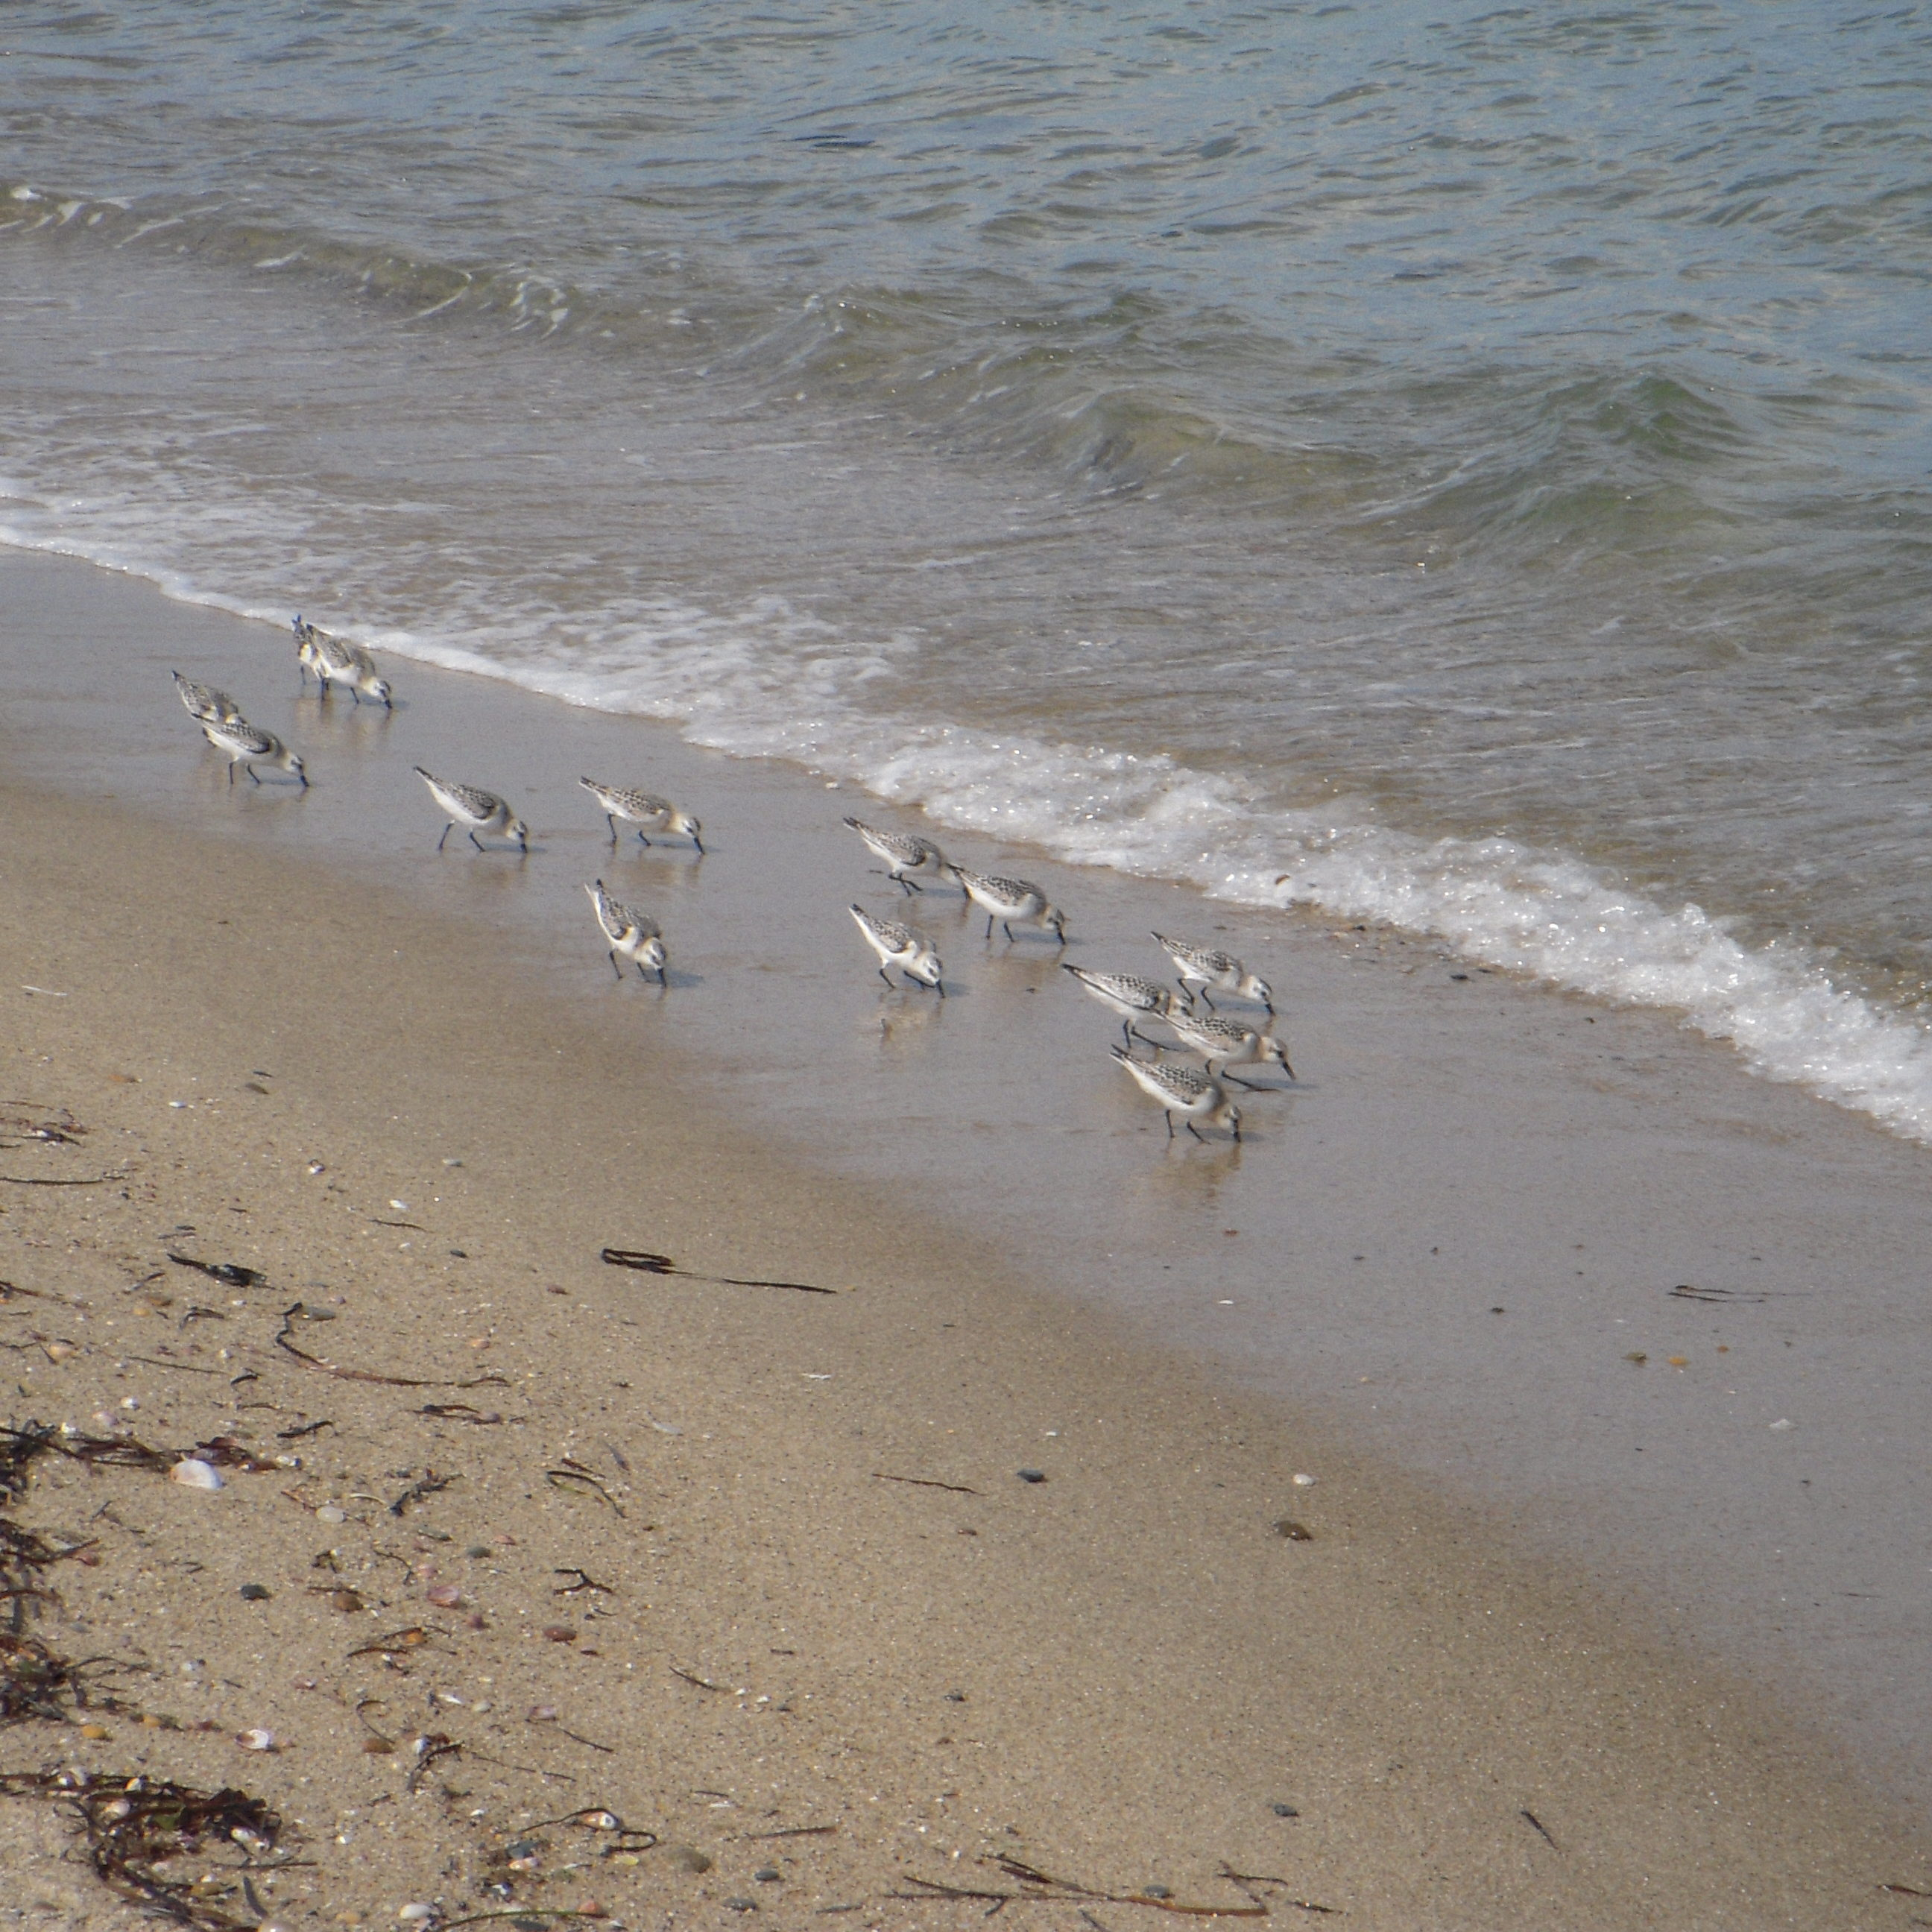 Sanderlings <em>(Calidris alba)</em>